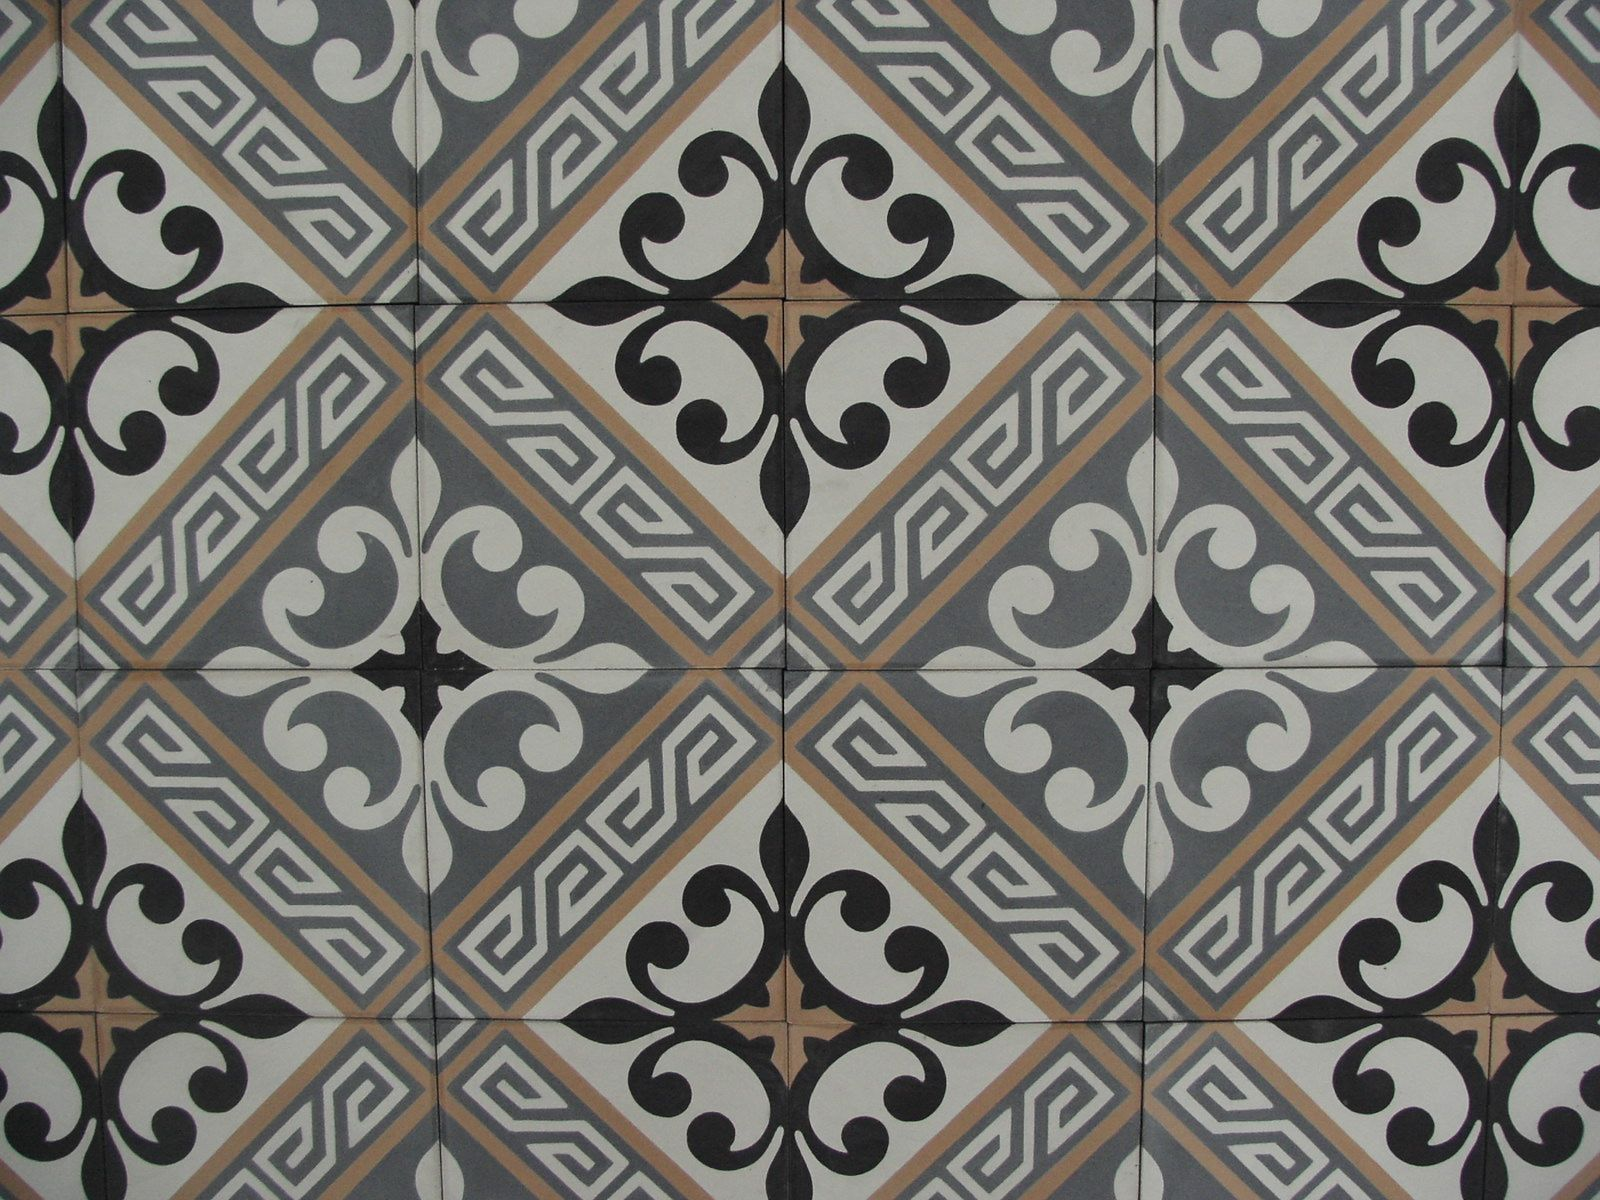 Lilyz black portugese tegels cement tiles encaustic floor tiles collection floorz pisar con - Cement tegels geloofwaardigheid ...